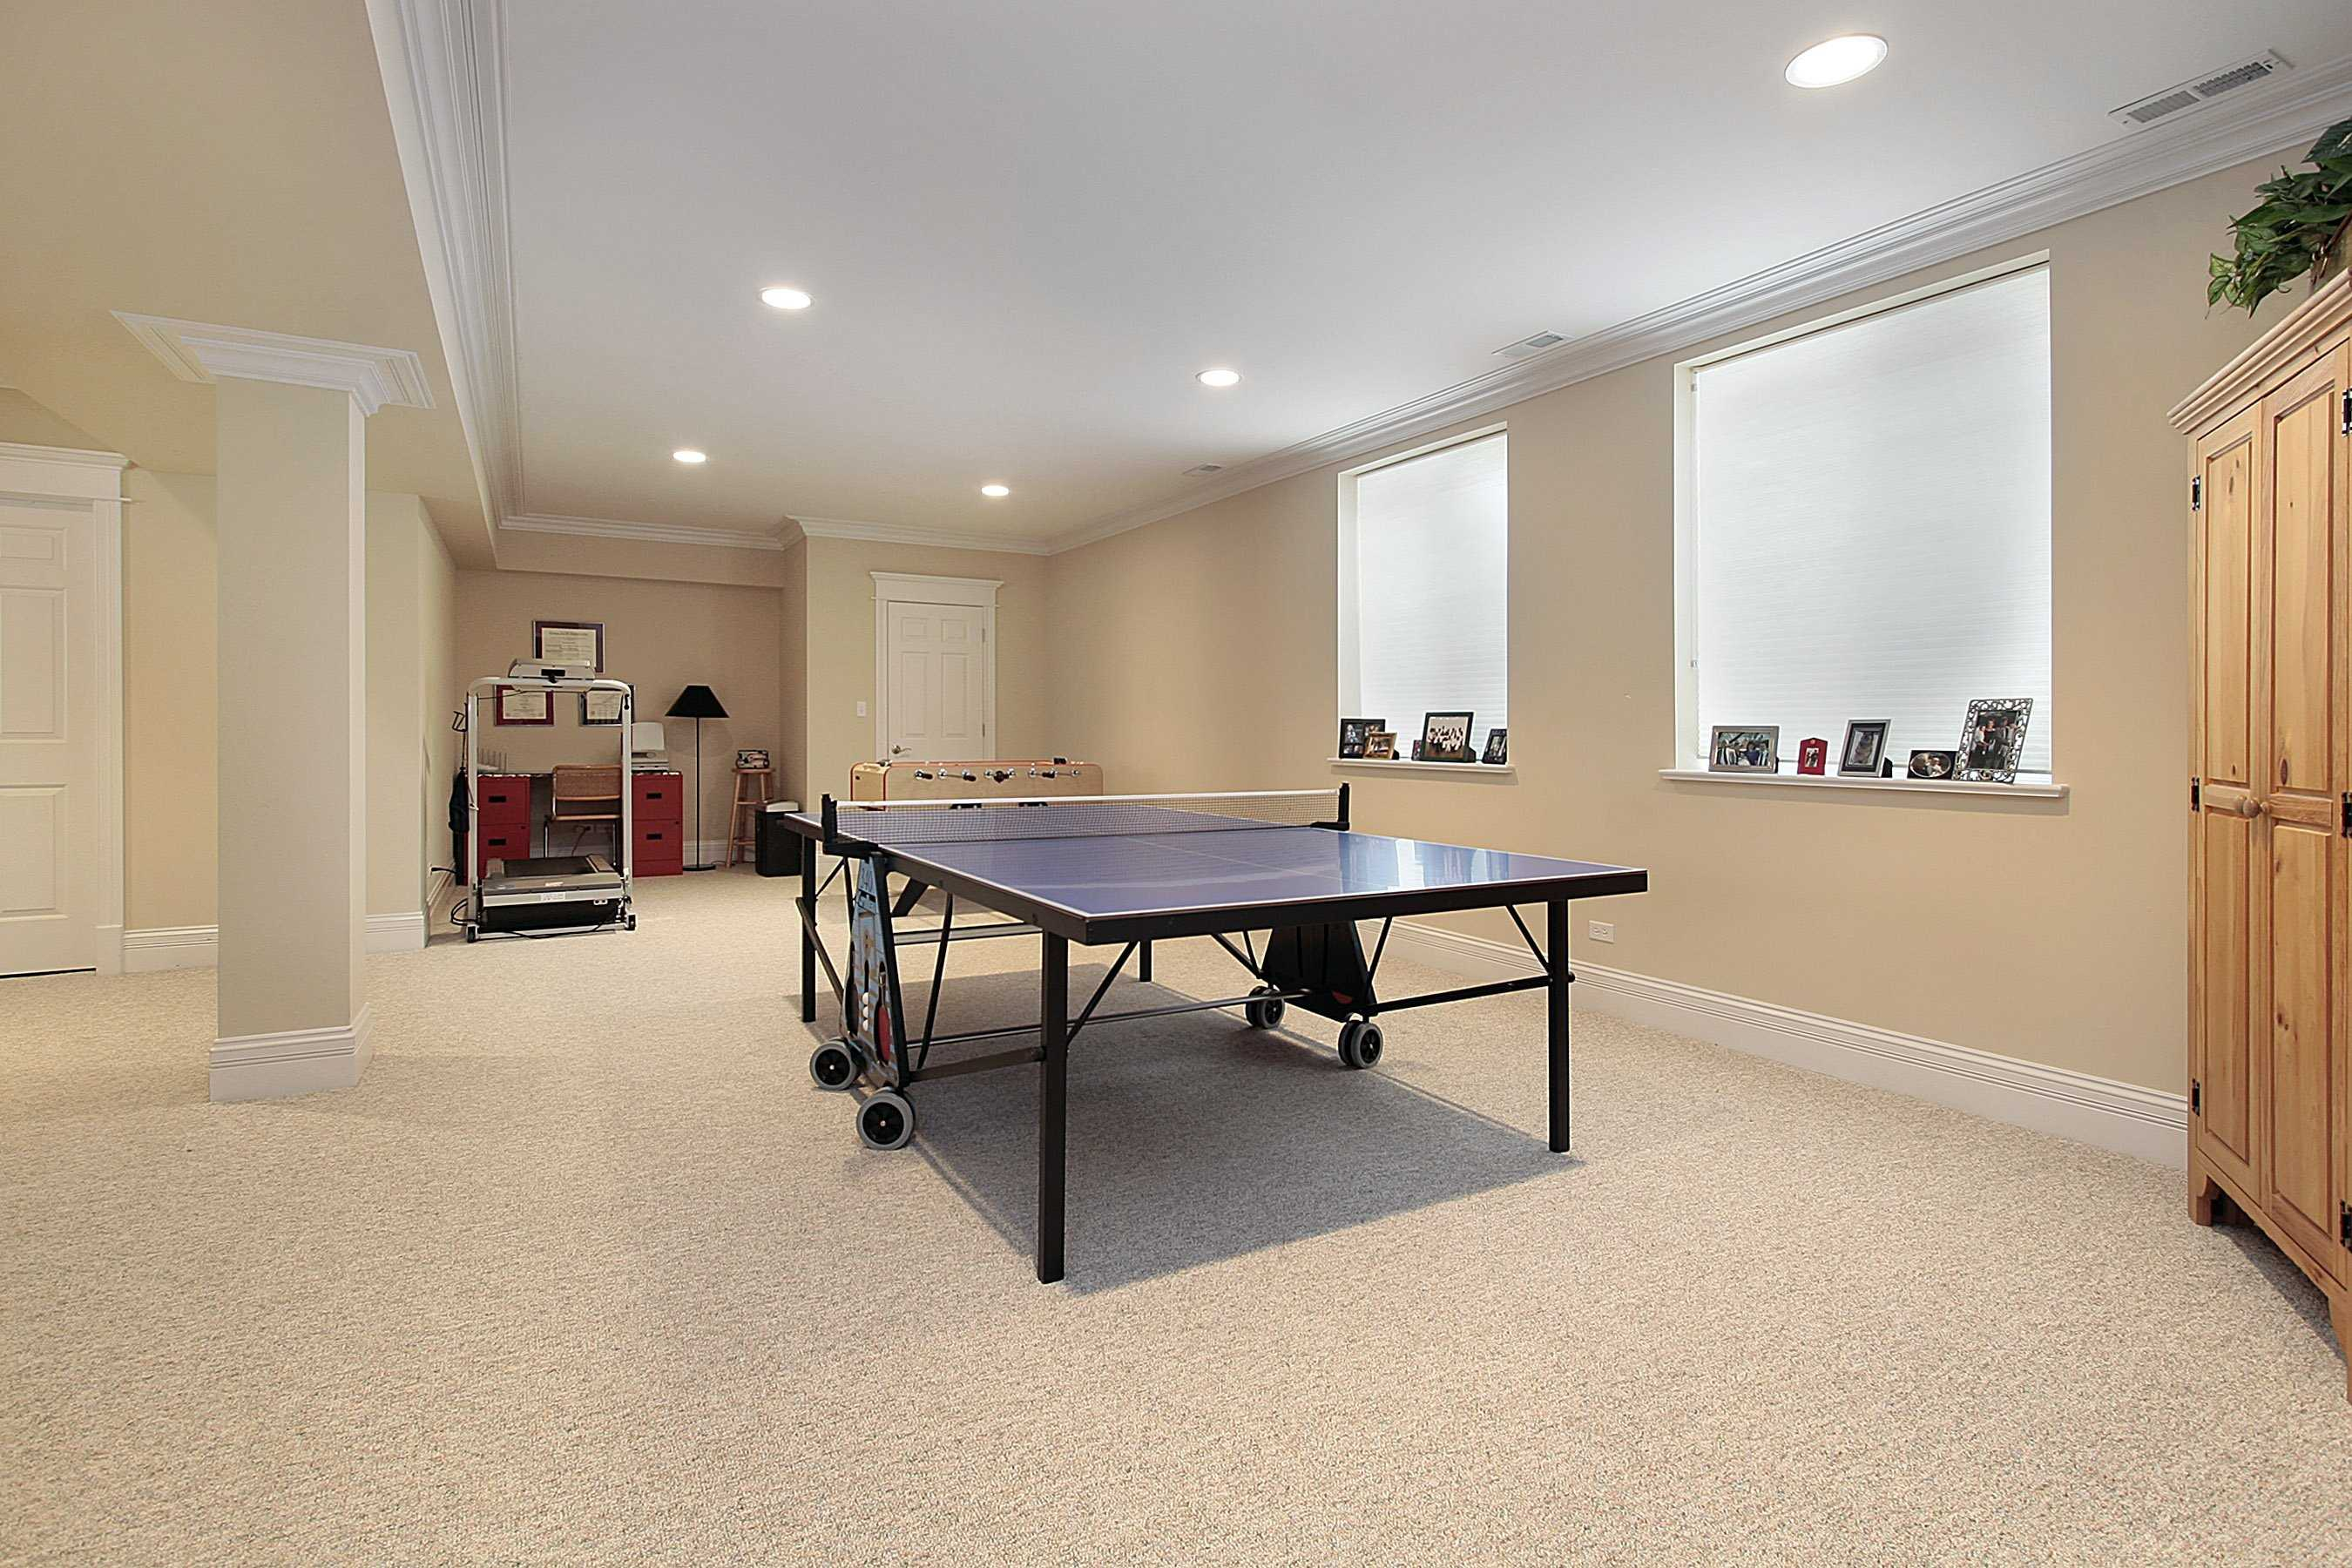 Basement Pictures And Inspirations For Your Remodel Ideas